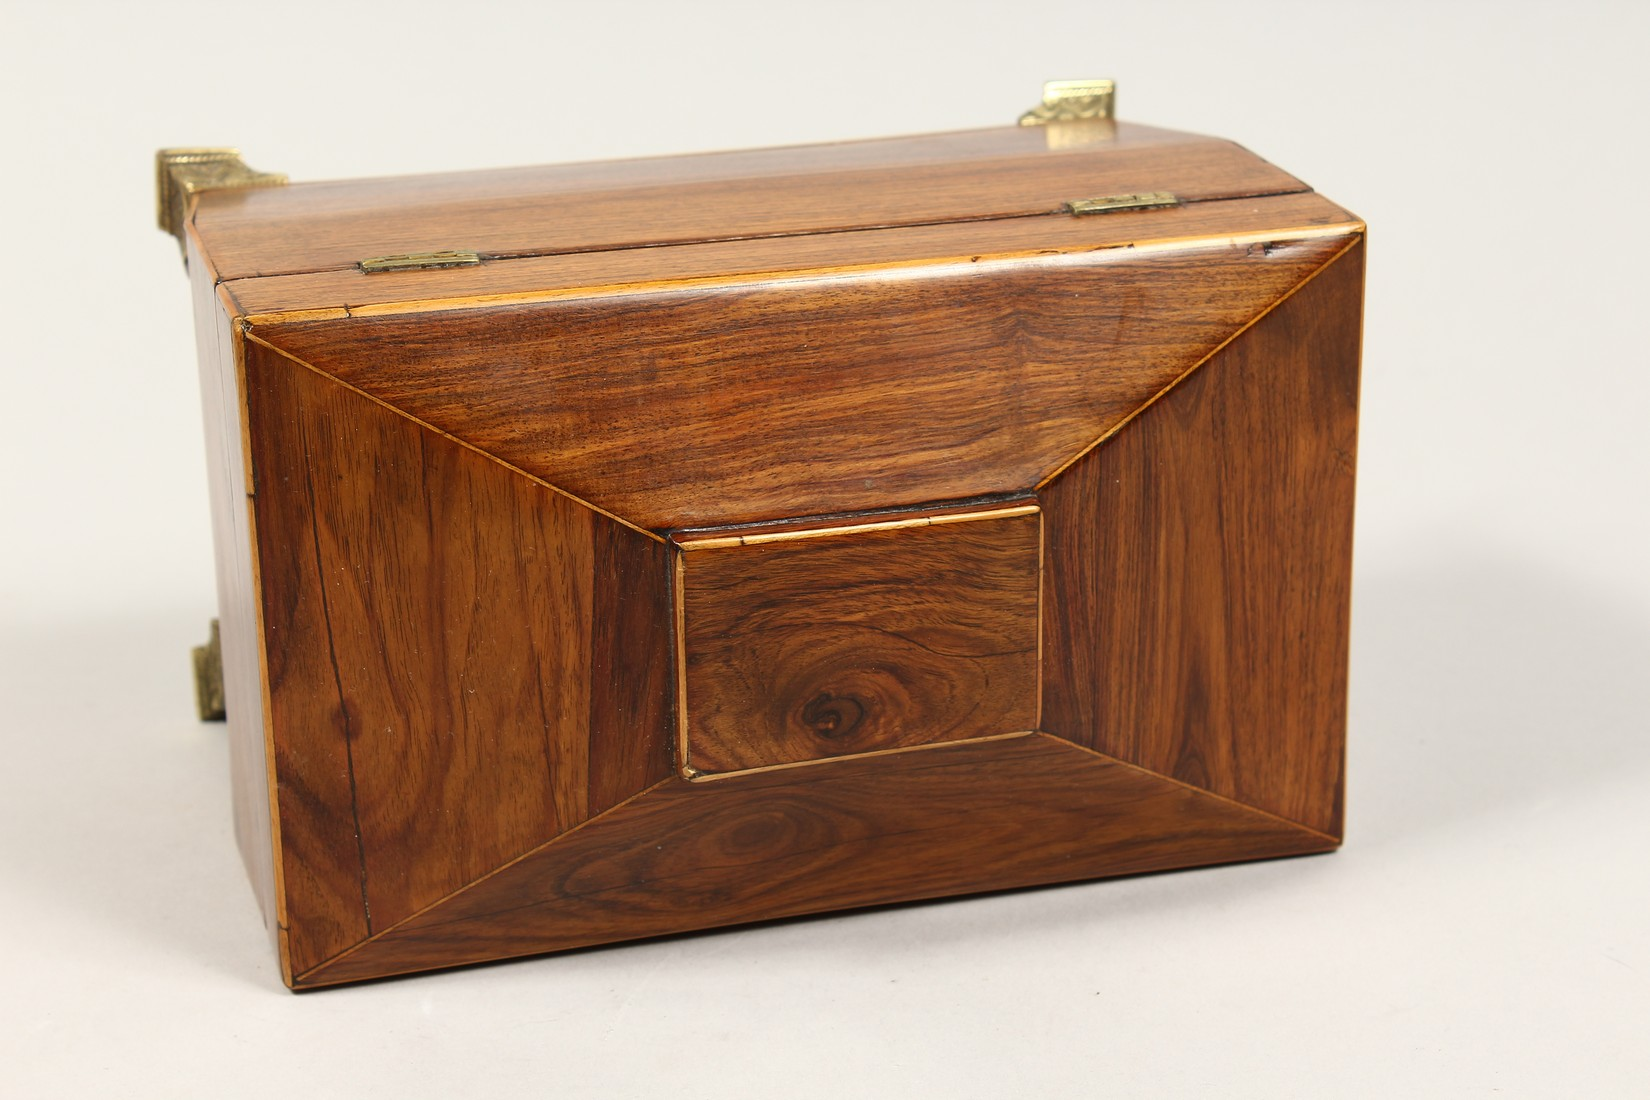 A REGENCY ROSEWOOD DOMED TOP TWO DIVISION TEA CADDY with iron escutcheon on brass bracket feet. 7. - Image 5 of 7